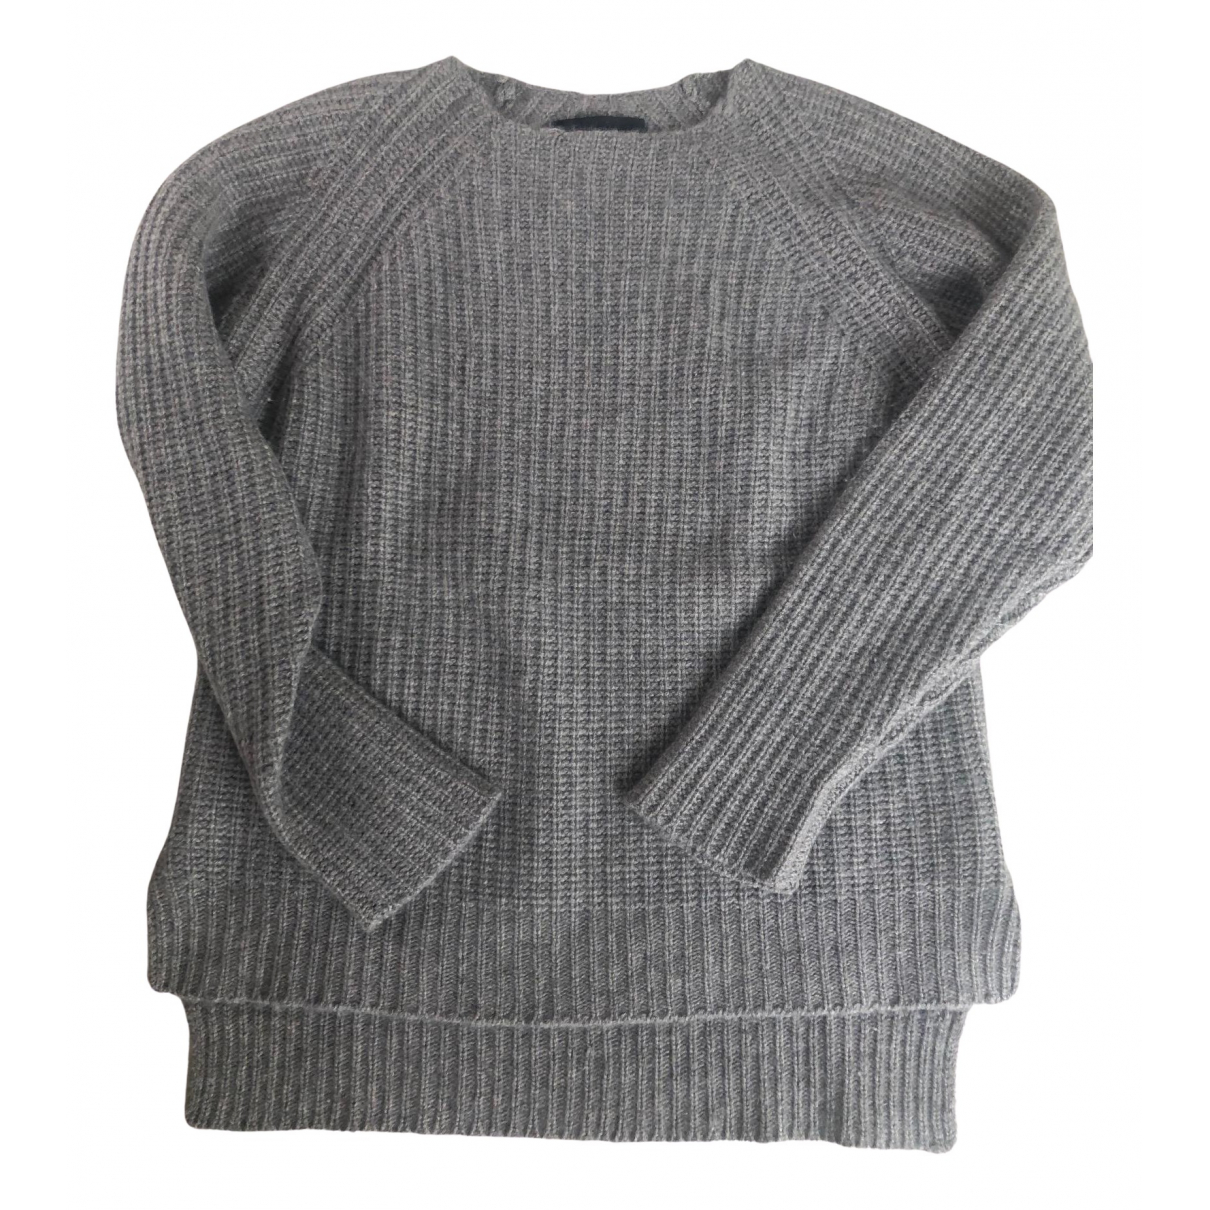 Zadig & Voltaire N Grey Cashmere Knitwear for Women S International